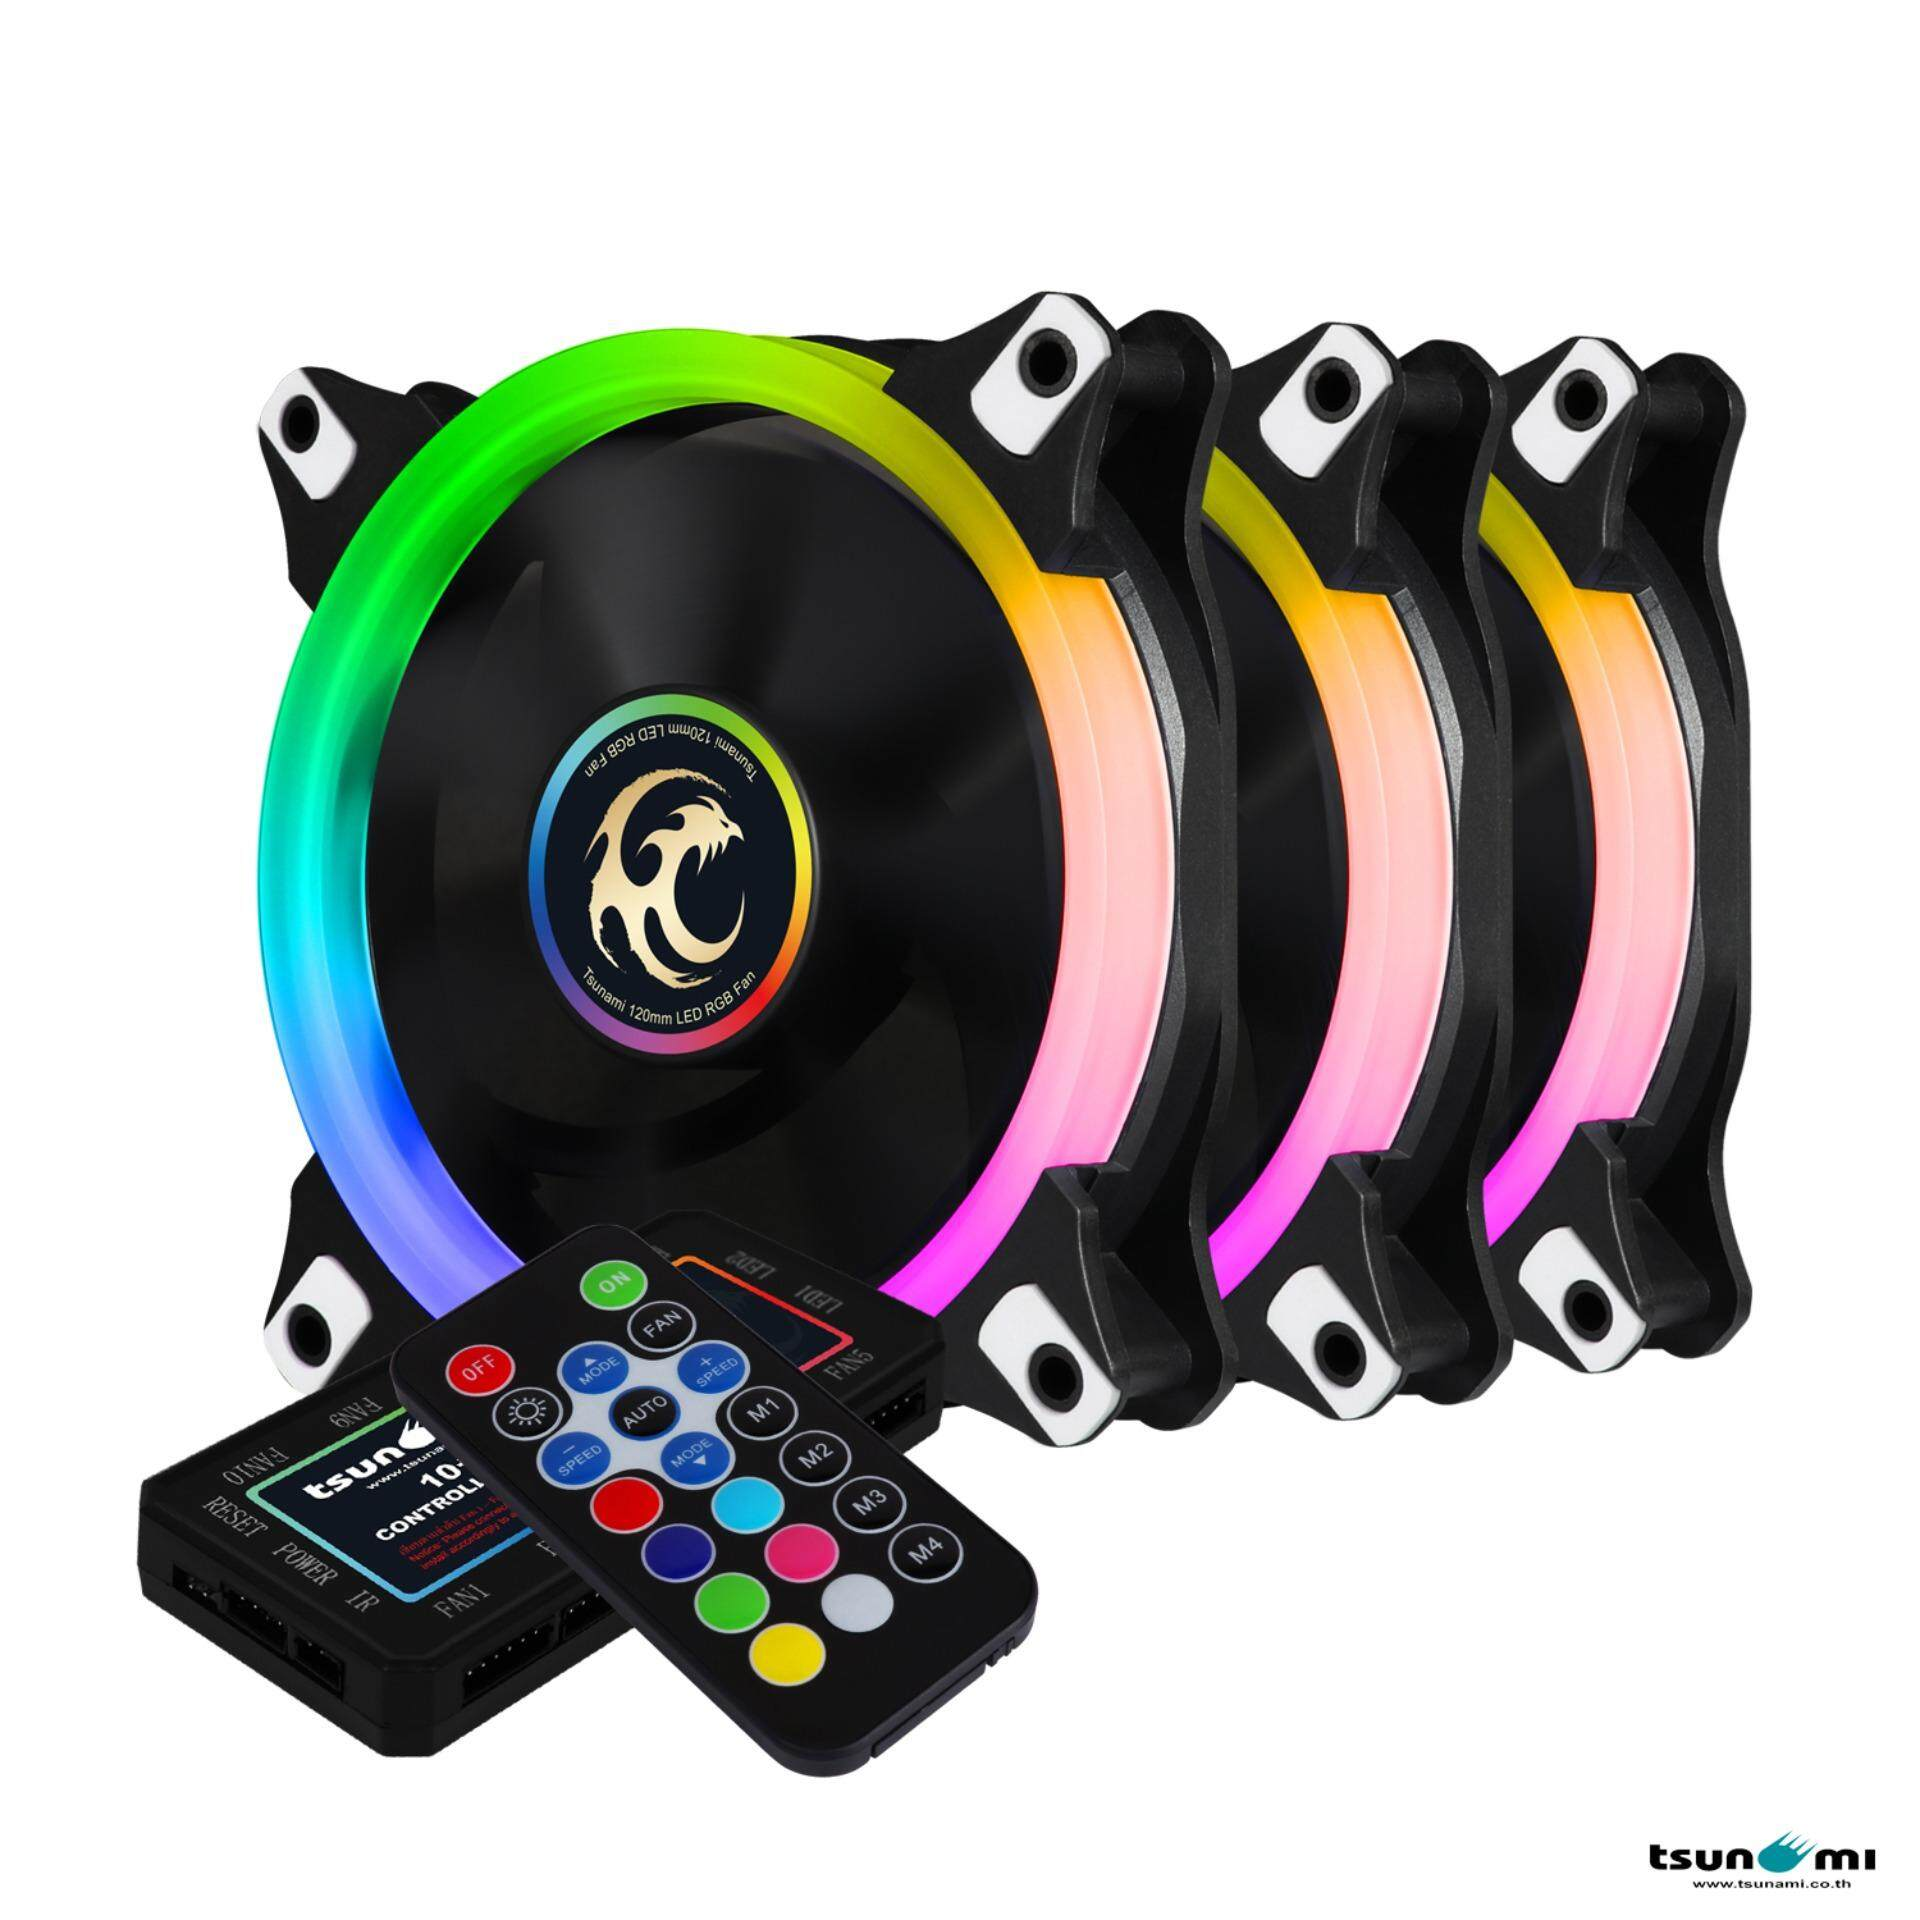 Tsunami Circle Series Mono-Rim RGB-120 RGB Fan Remote Control X 3 Cooling fan